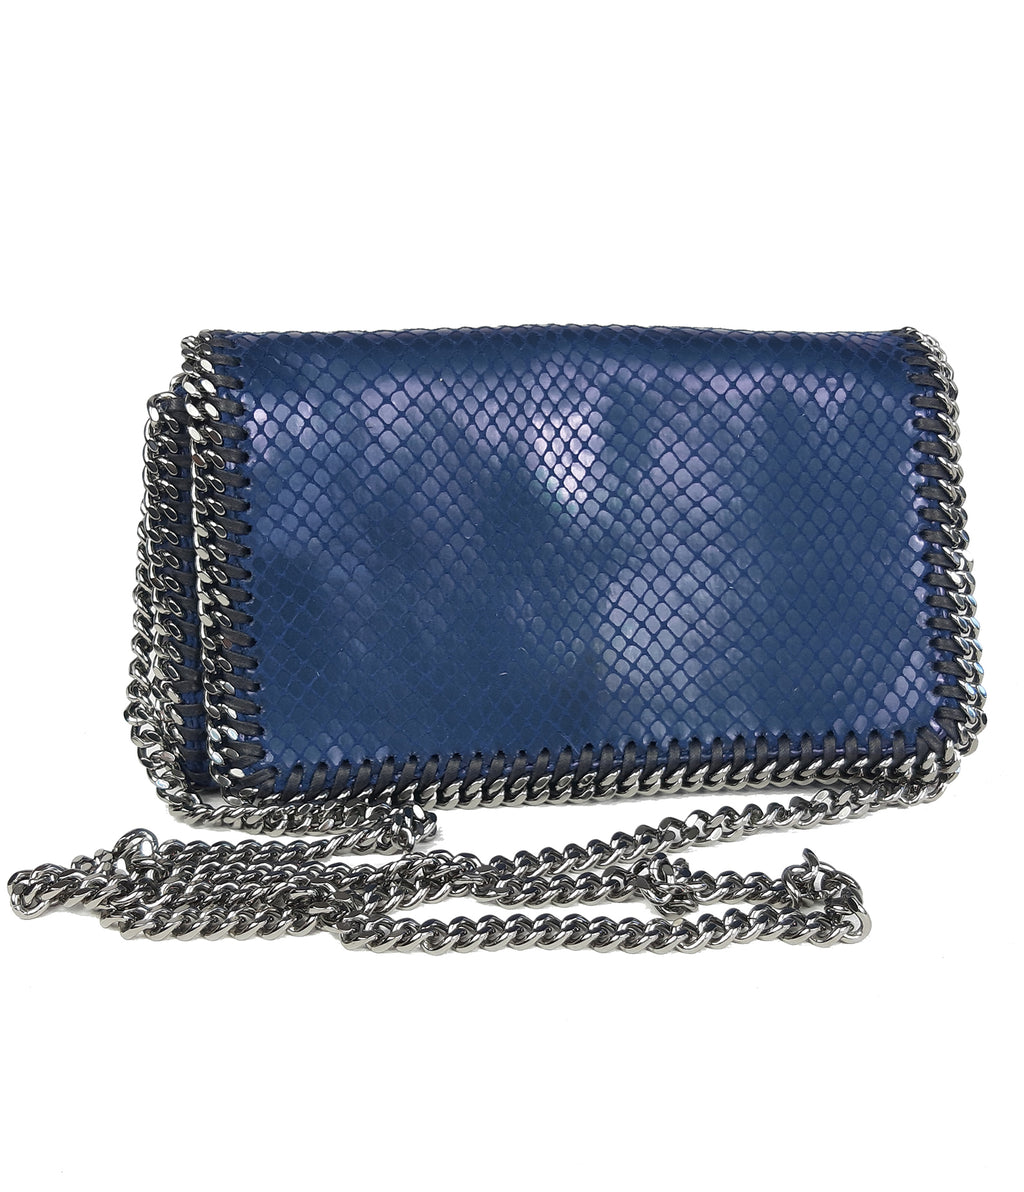 Stella McCartney Blue Vegan Snakeskin Mini Falabella Crossbody Bag with Ruthenium Hardware